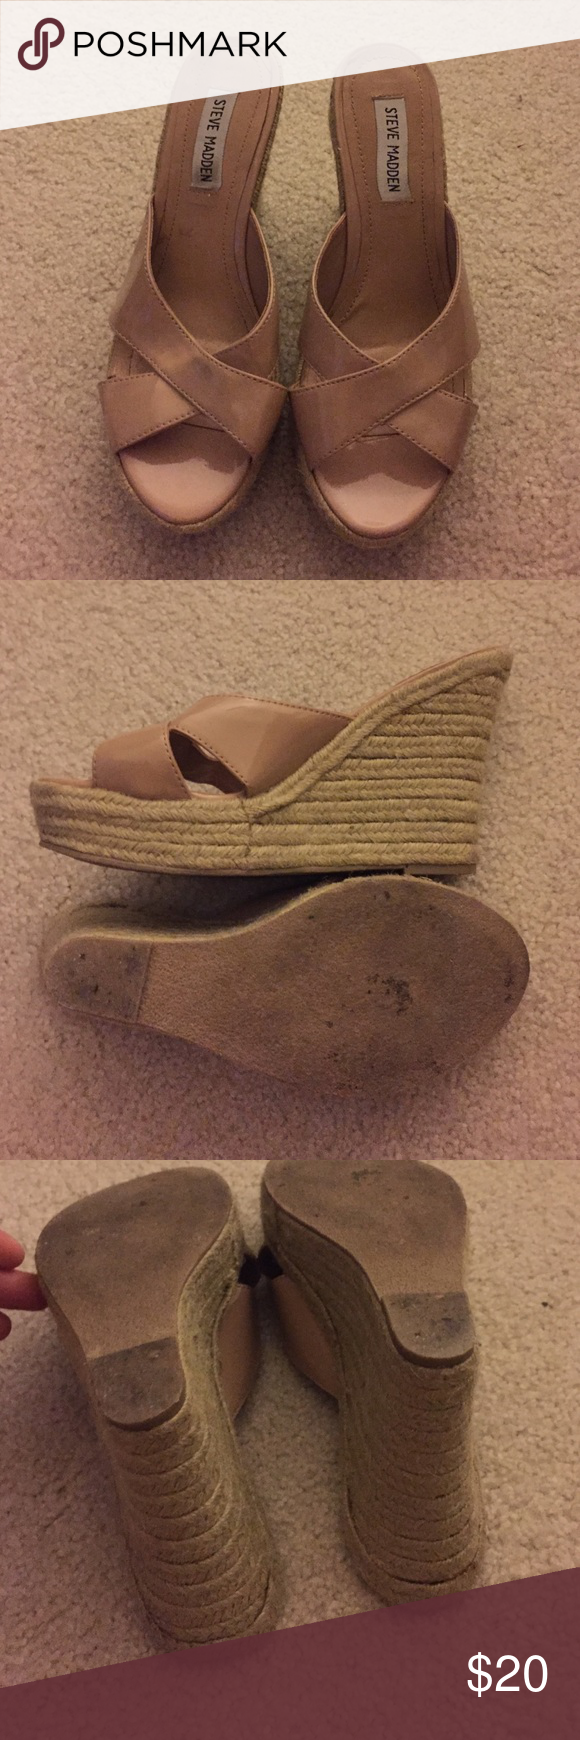 Tan wedged sandals Steve Madden tan wedged sandal, these are a size 8. Still have a lot of wear. About 4 inches high. Nine West Shoes Wedges